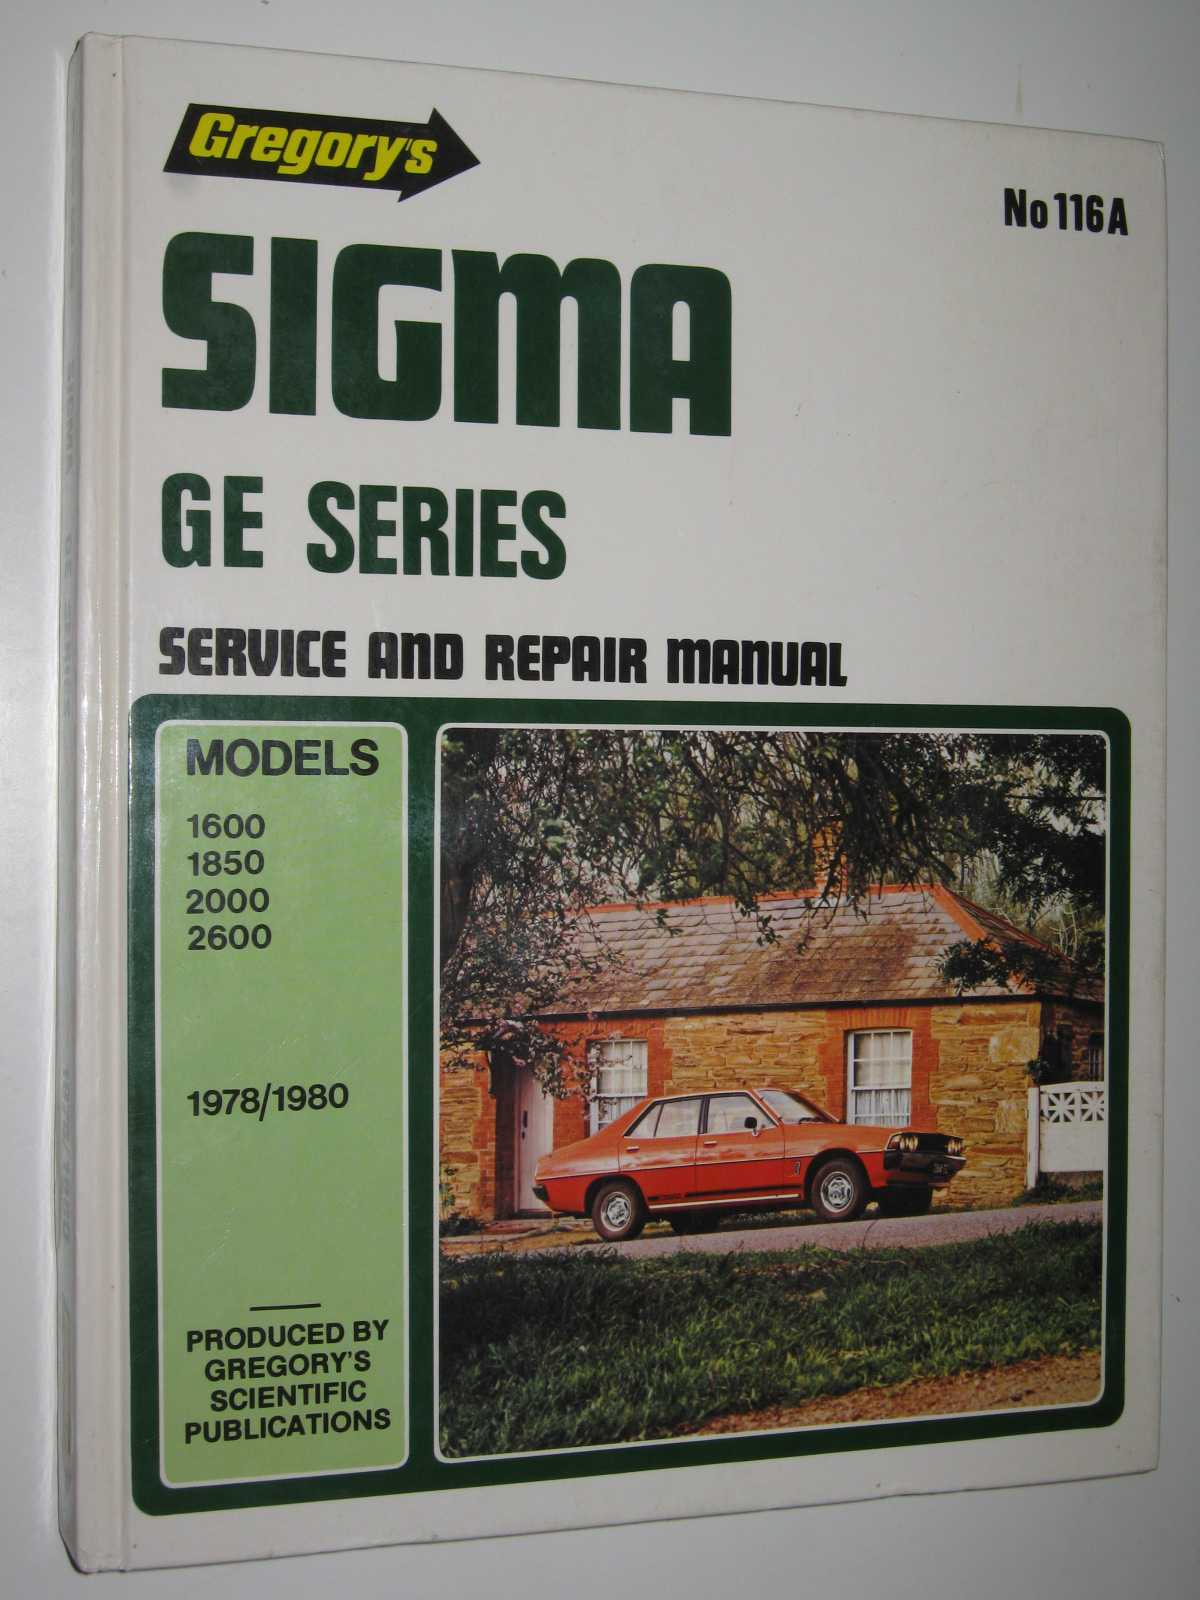 Image for Sigma GE Series 1978/1980 Models 1600, 1850, 2000, 2600 - Service and Repair Manual Series #116